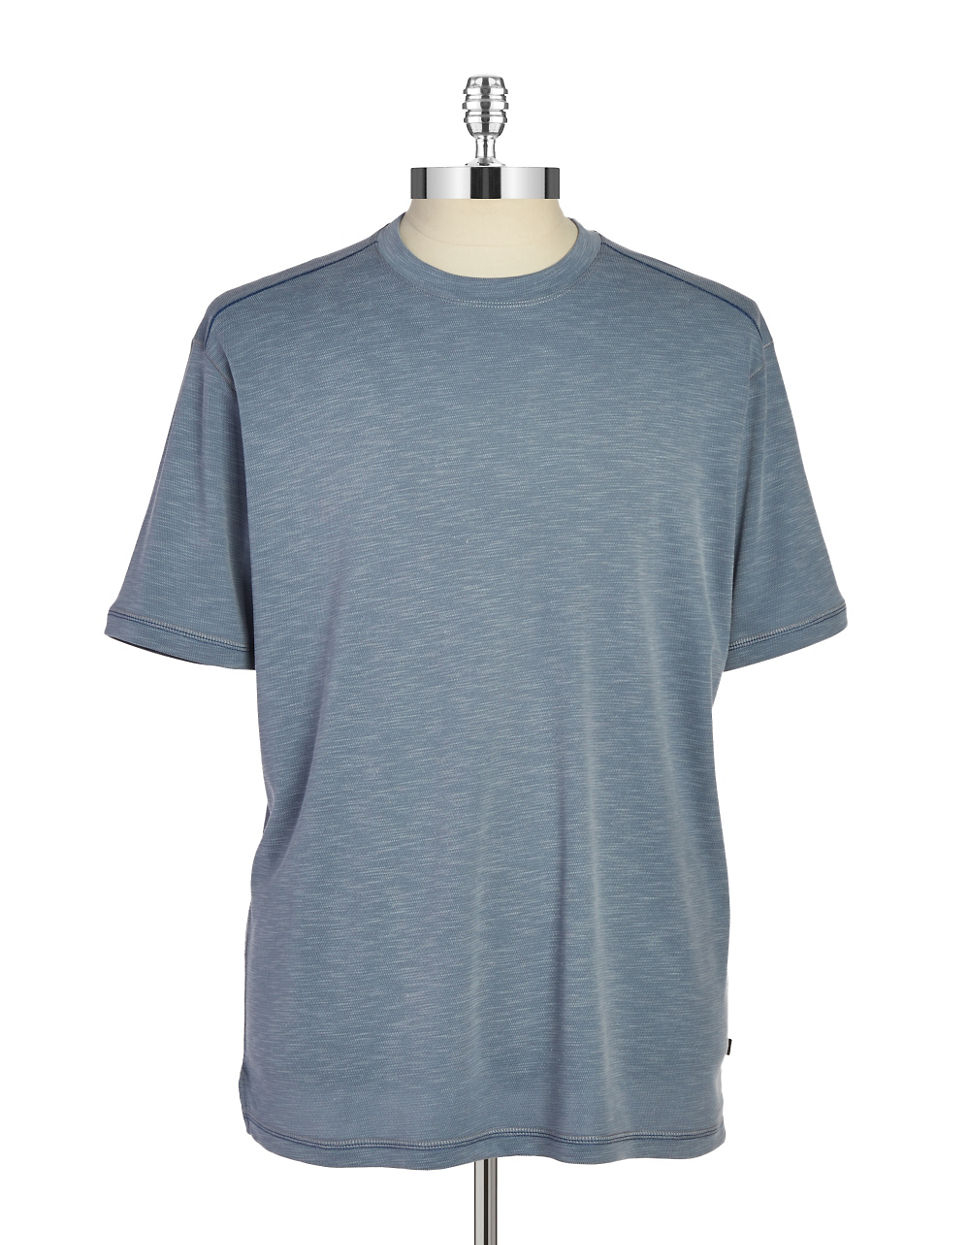 Tommy Bahama Paradise Around Tee In Blue For Men Lyst